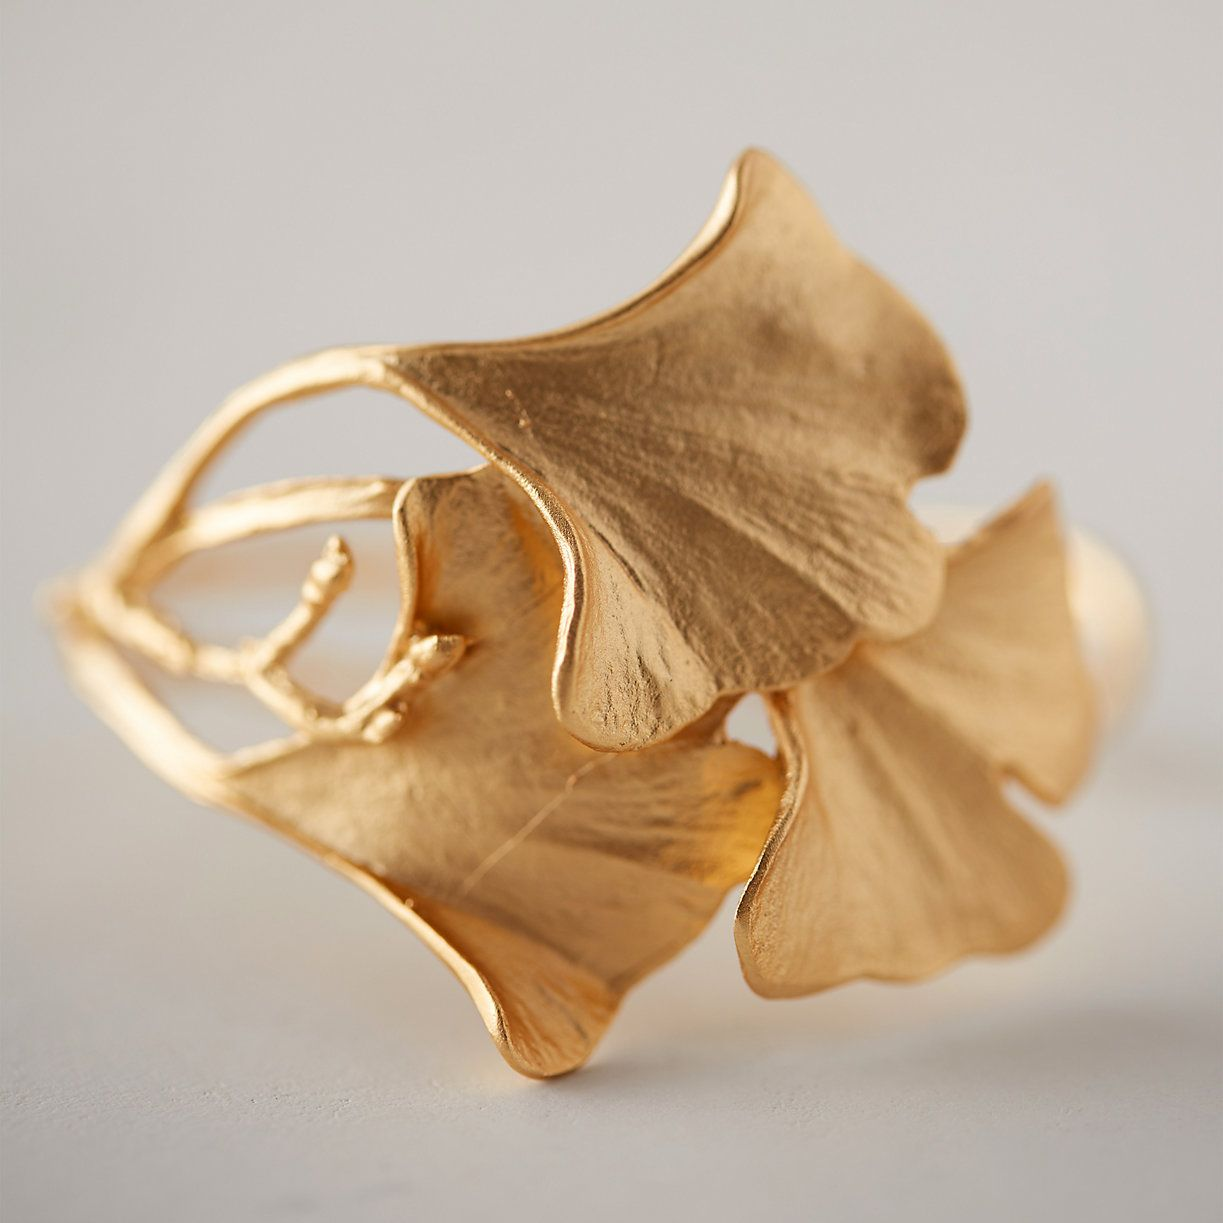 """Hand-cast in a mold created directly from overlapping gingko leaves, this graceful cuff was crafted by New York designer Michael Michaud.- Bronze- Adjustable- Clean with soap and water as needed- Handmade in the USA2""""W, 2.25"""" diameter"""